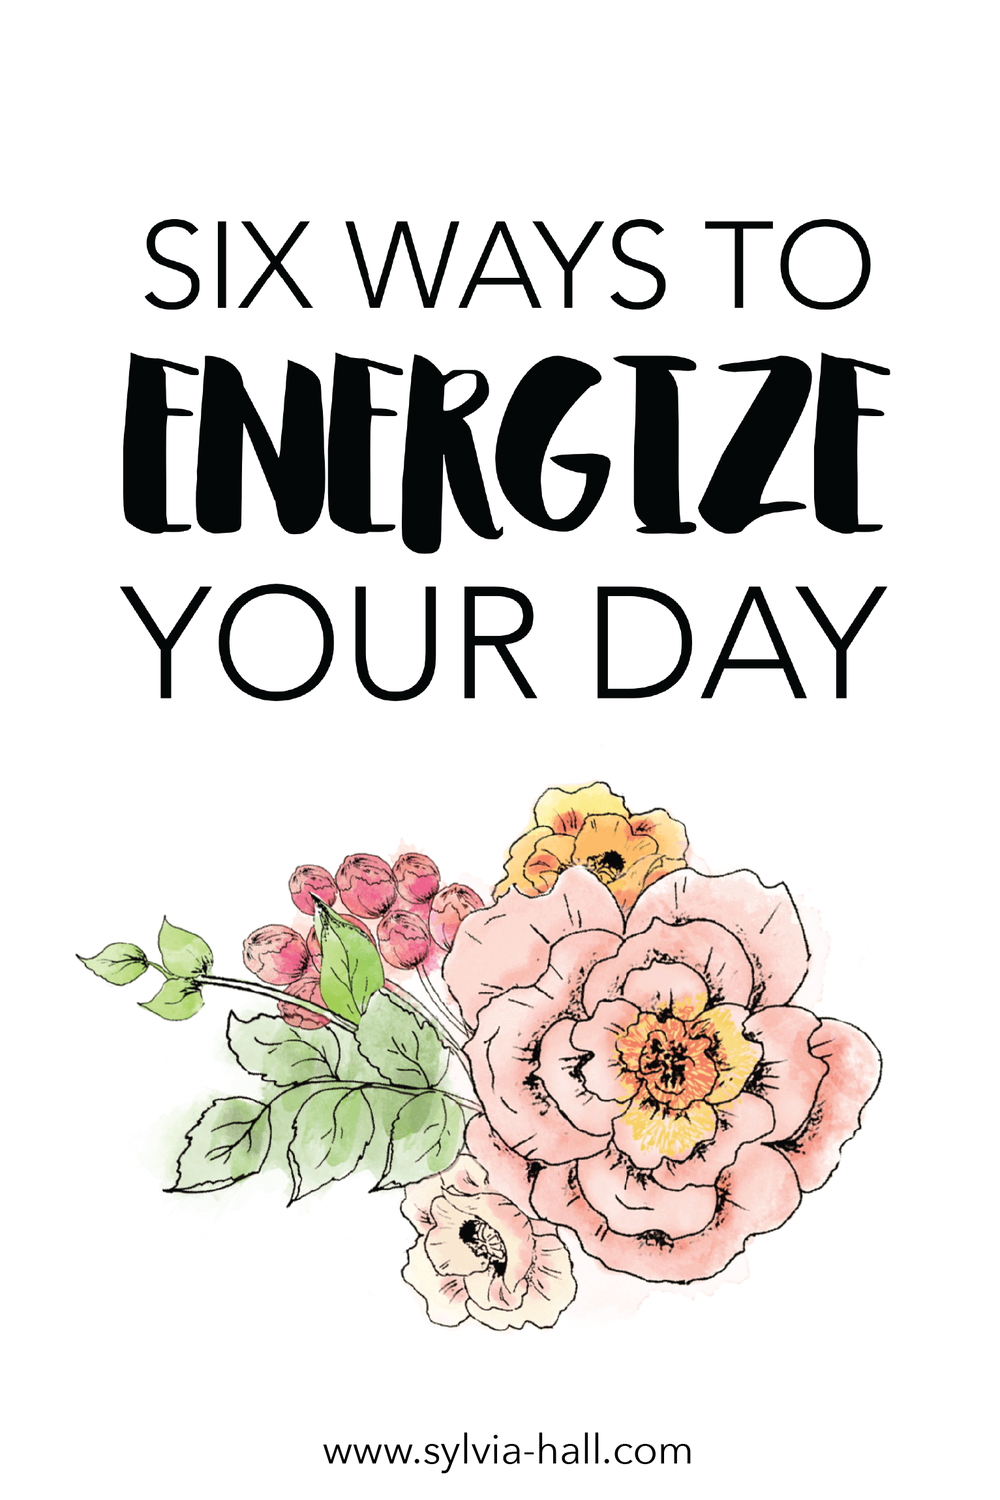 6 WAYS TO ENERGIZE YOUR DAY